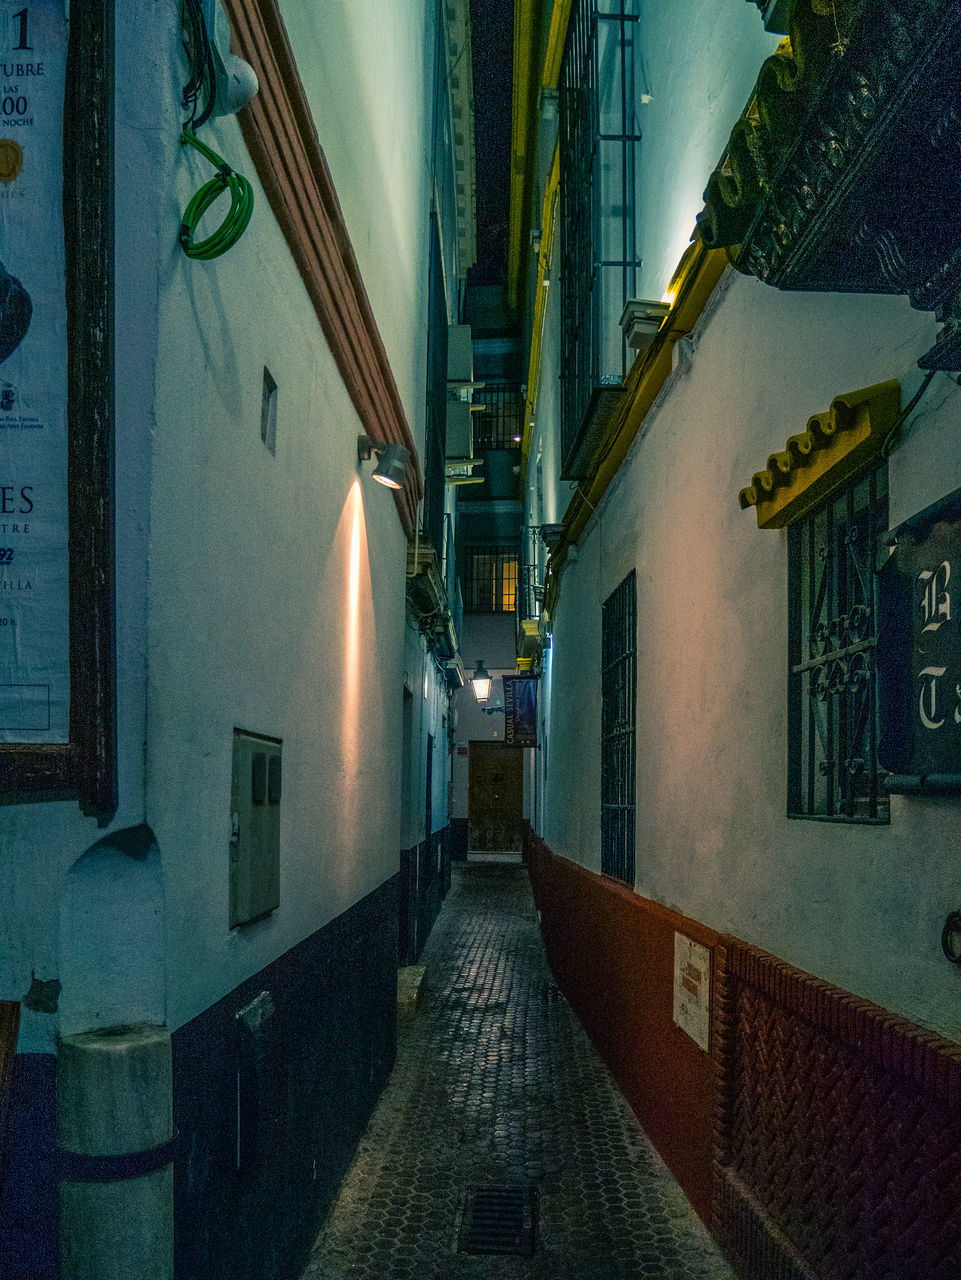 architecture, building exterior, built structure, building, the way forward, residential district, direction, city, illuminated, no people, street, night, footpath, narrow, alley, window, outdoors, empty, lighting equipment, house